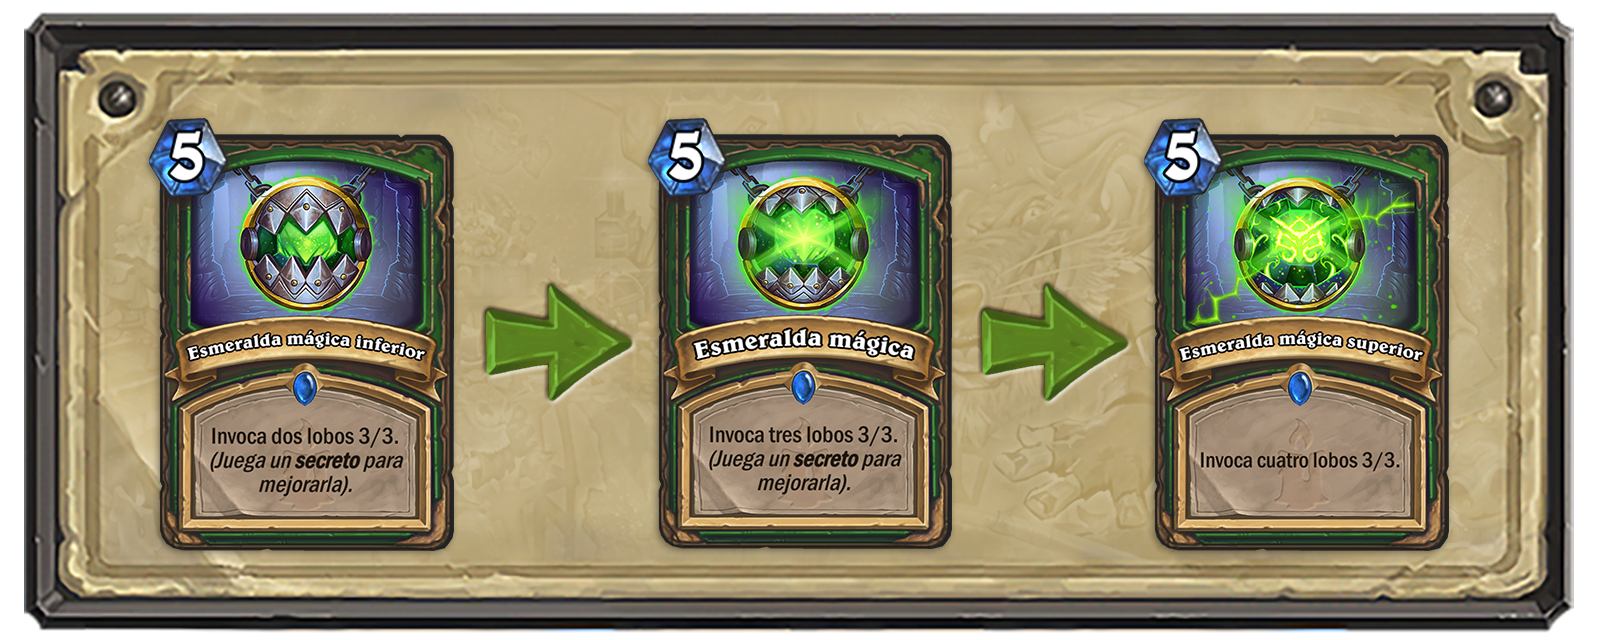 esES_Cards_HS_Emerald_LW_1000x690.png